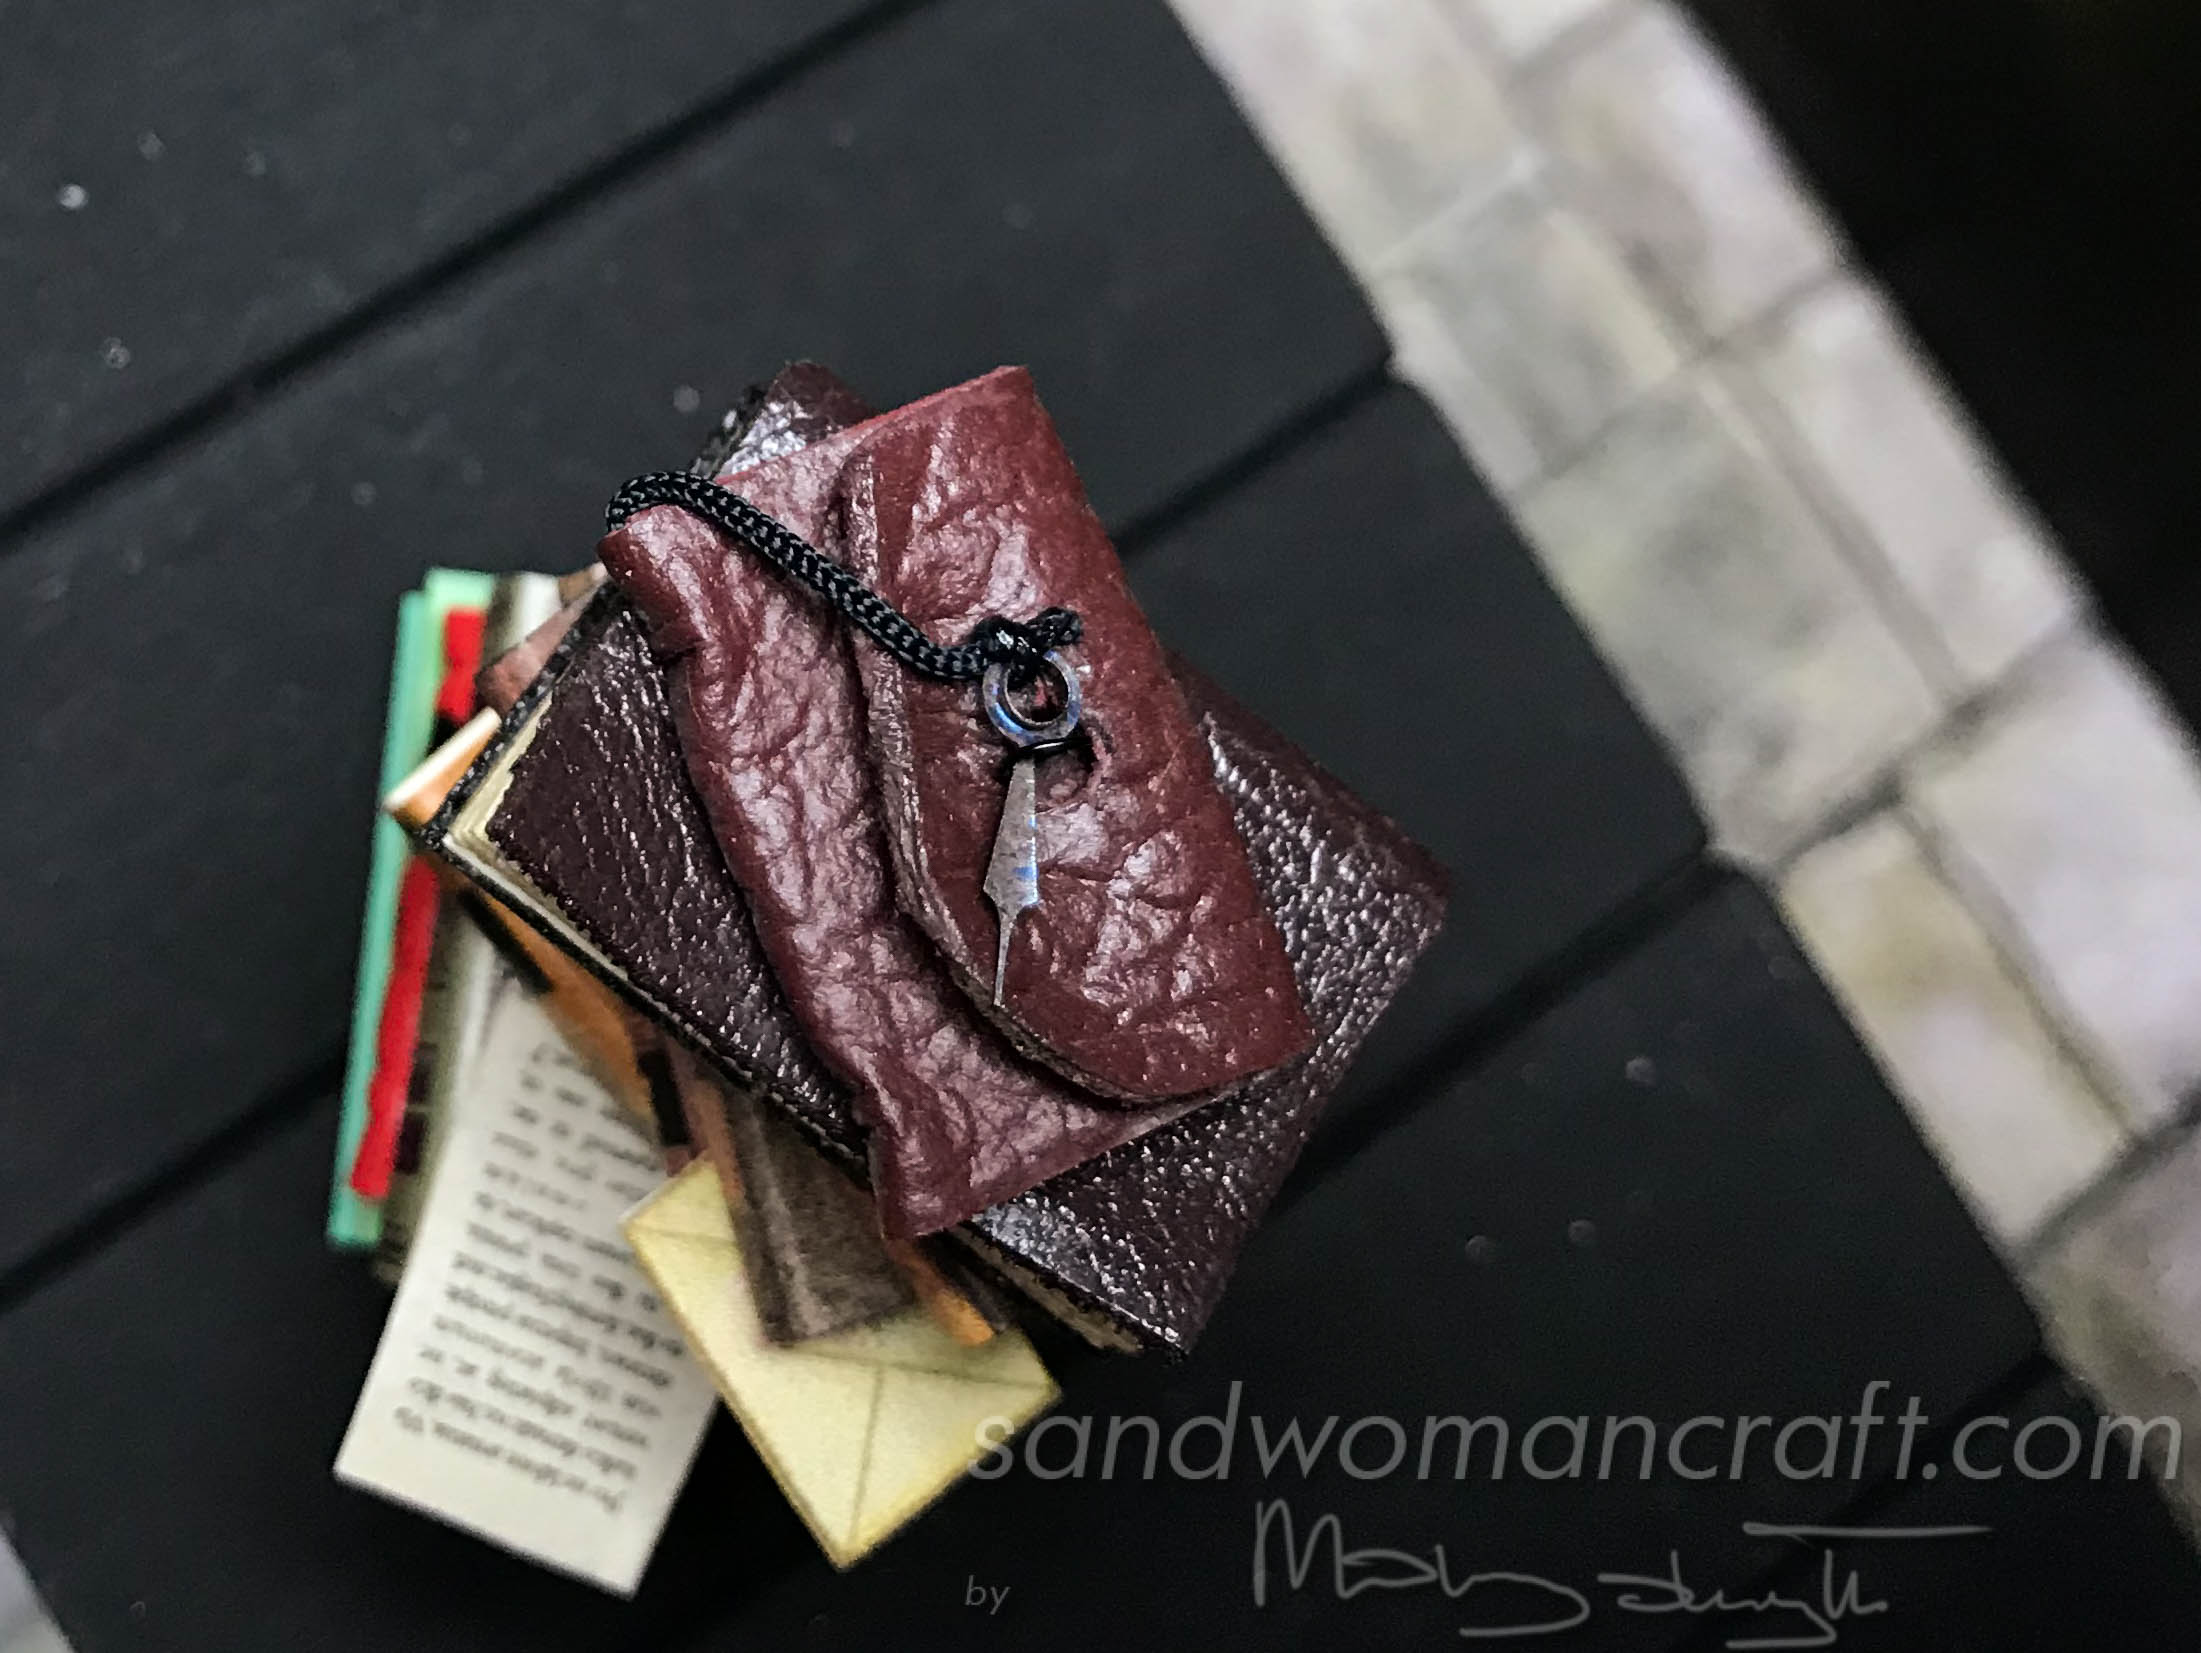 Miniature books stacked with leather art journal